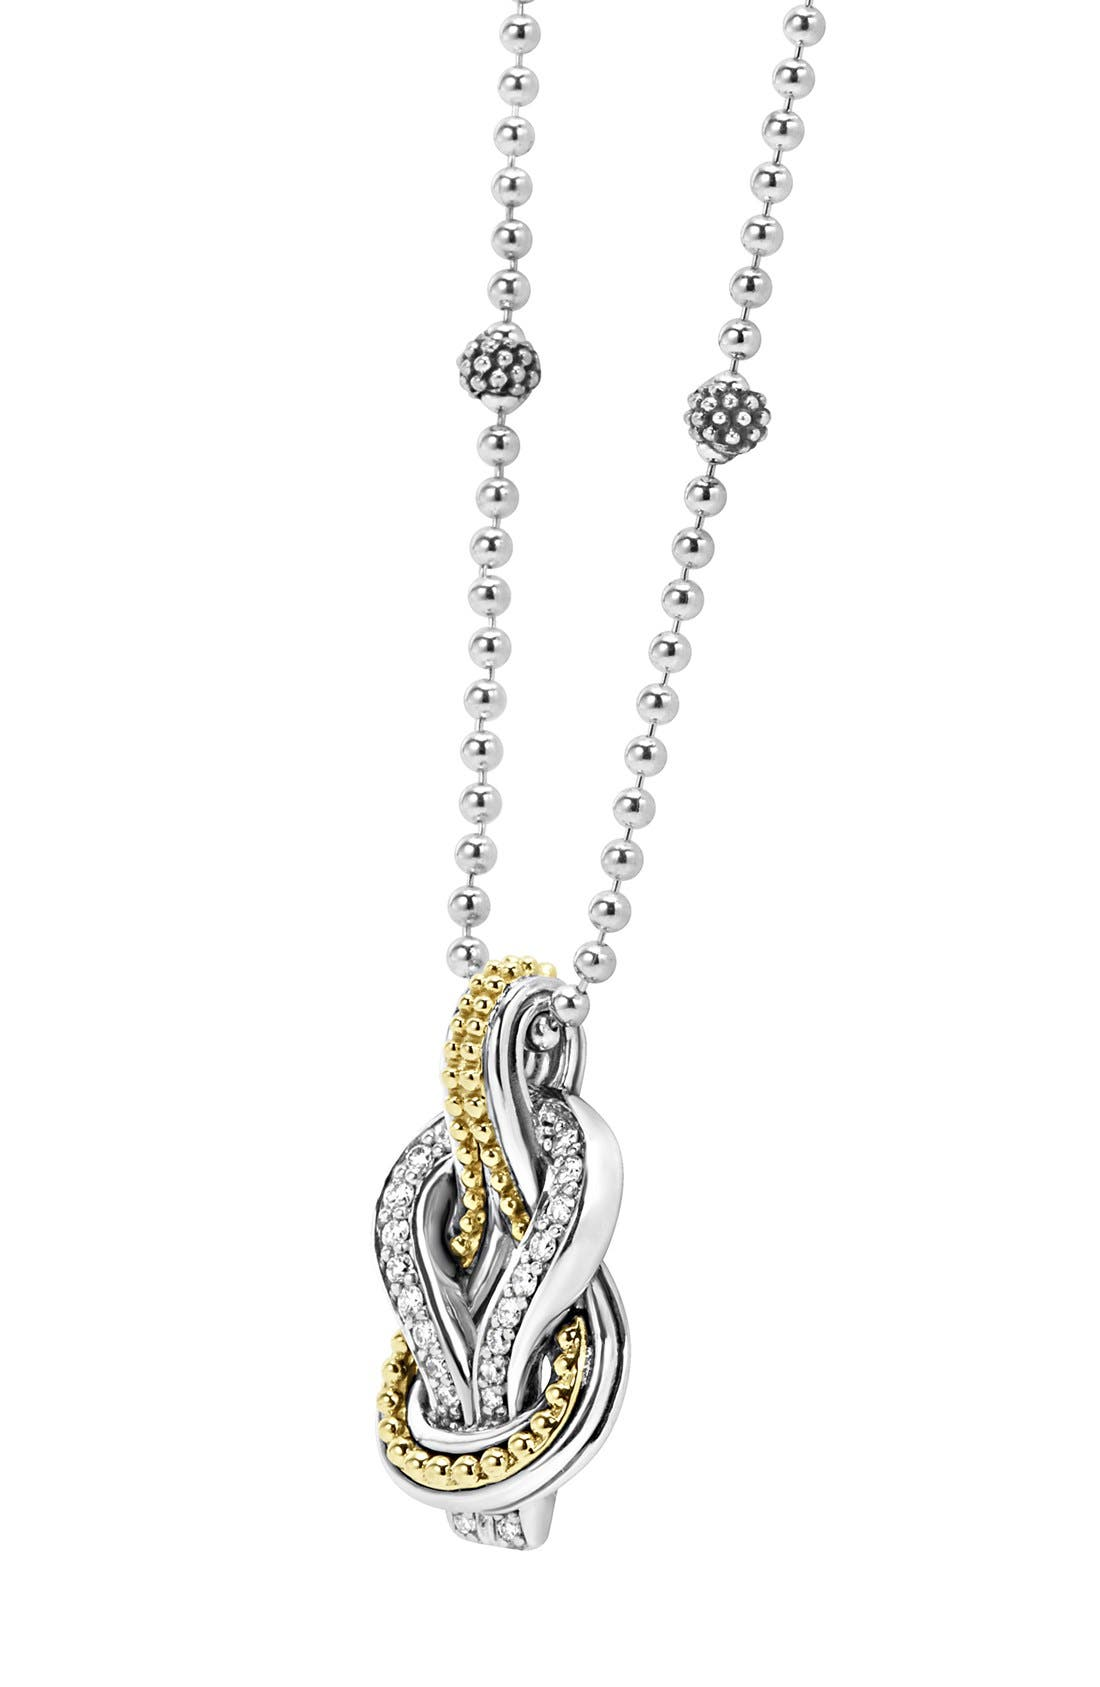 'Newport' Diamond Knot Pendant Necklace,                             Alternate thumbnail 7, color,                             040